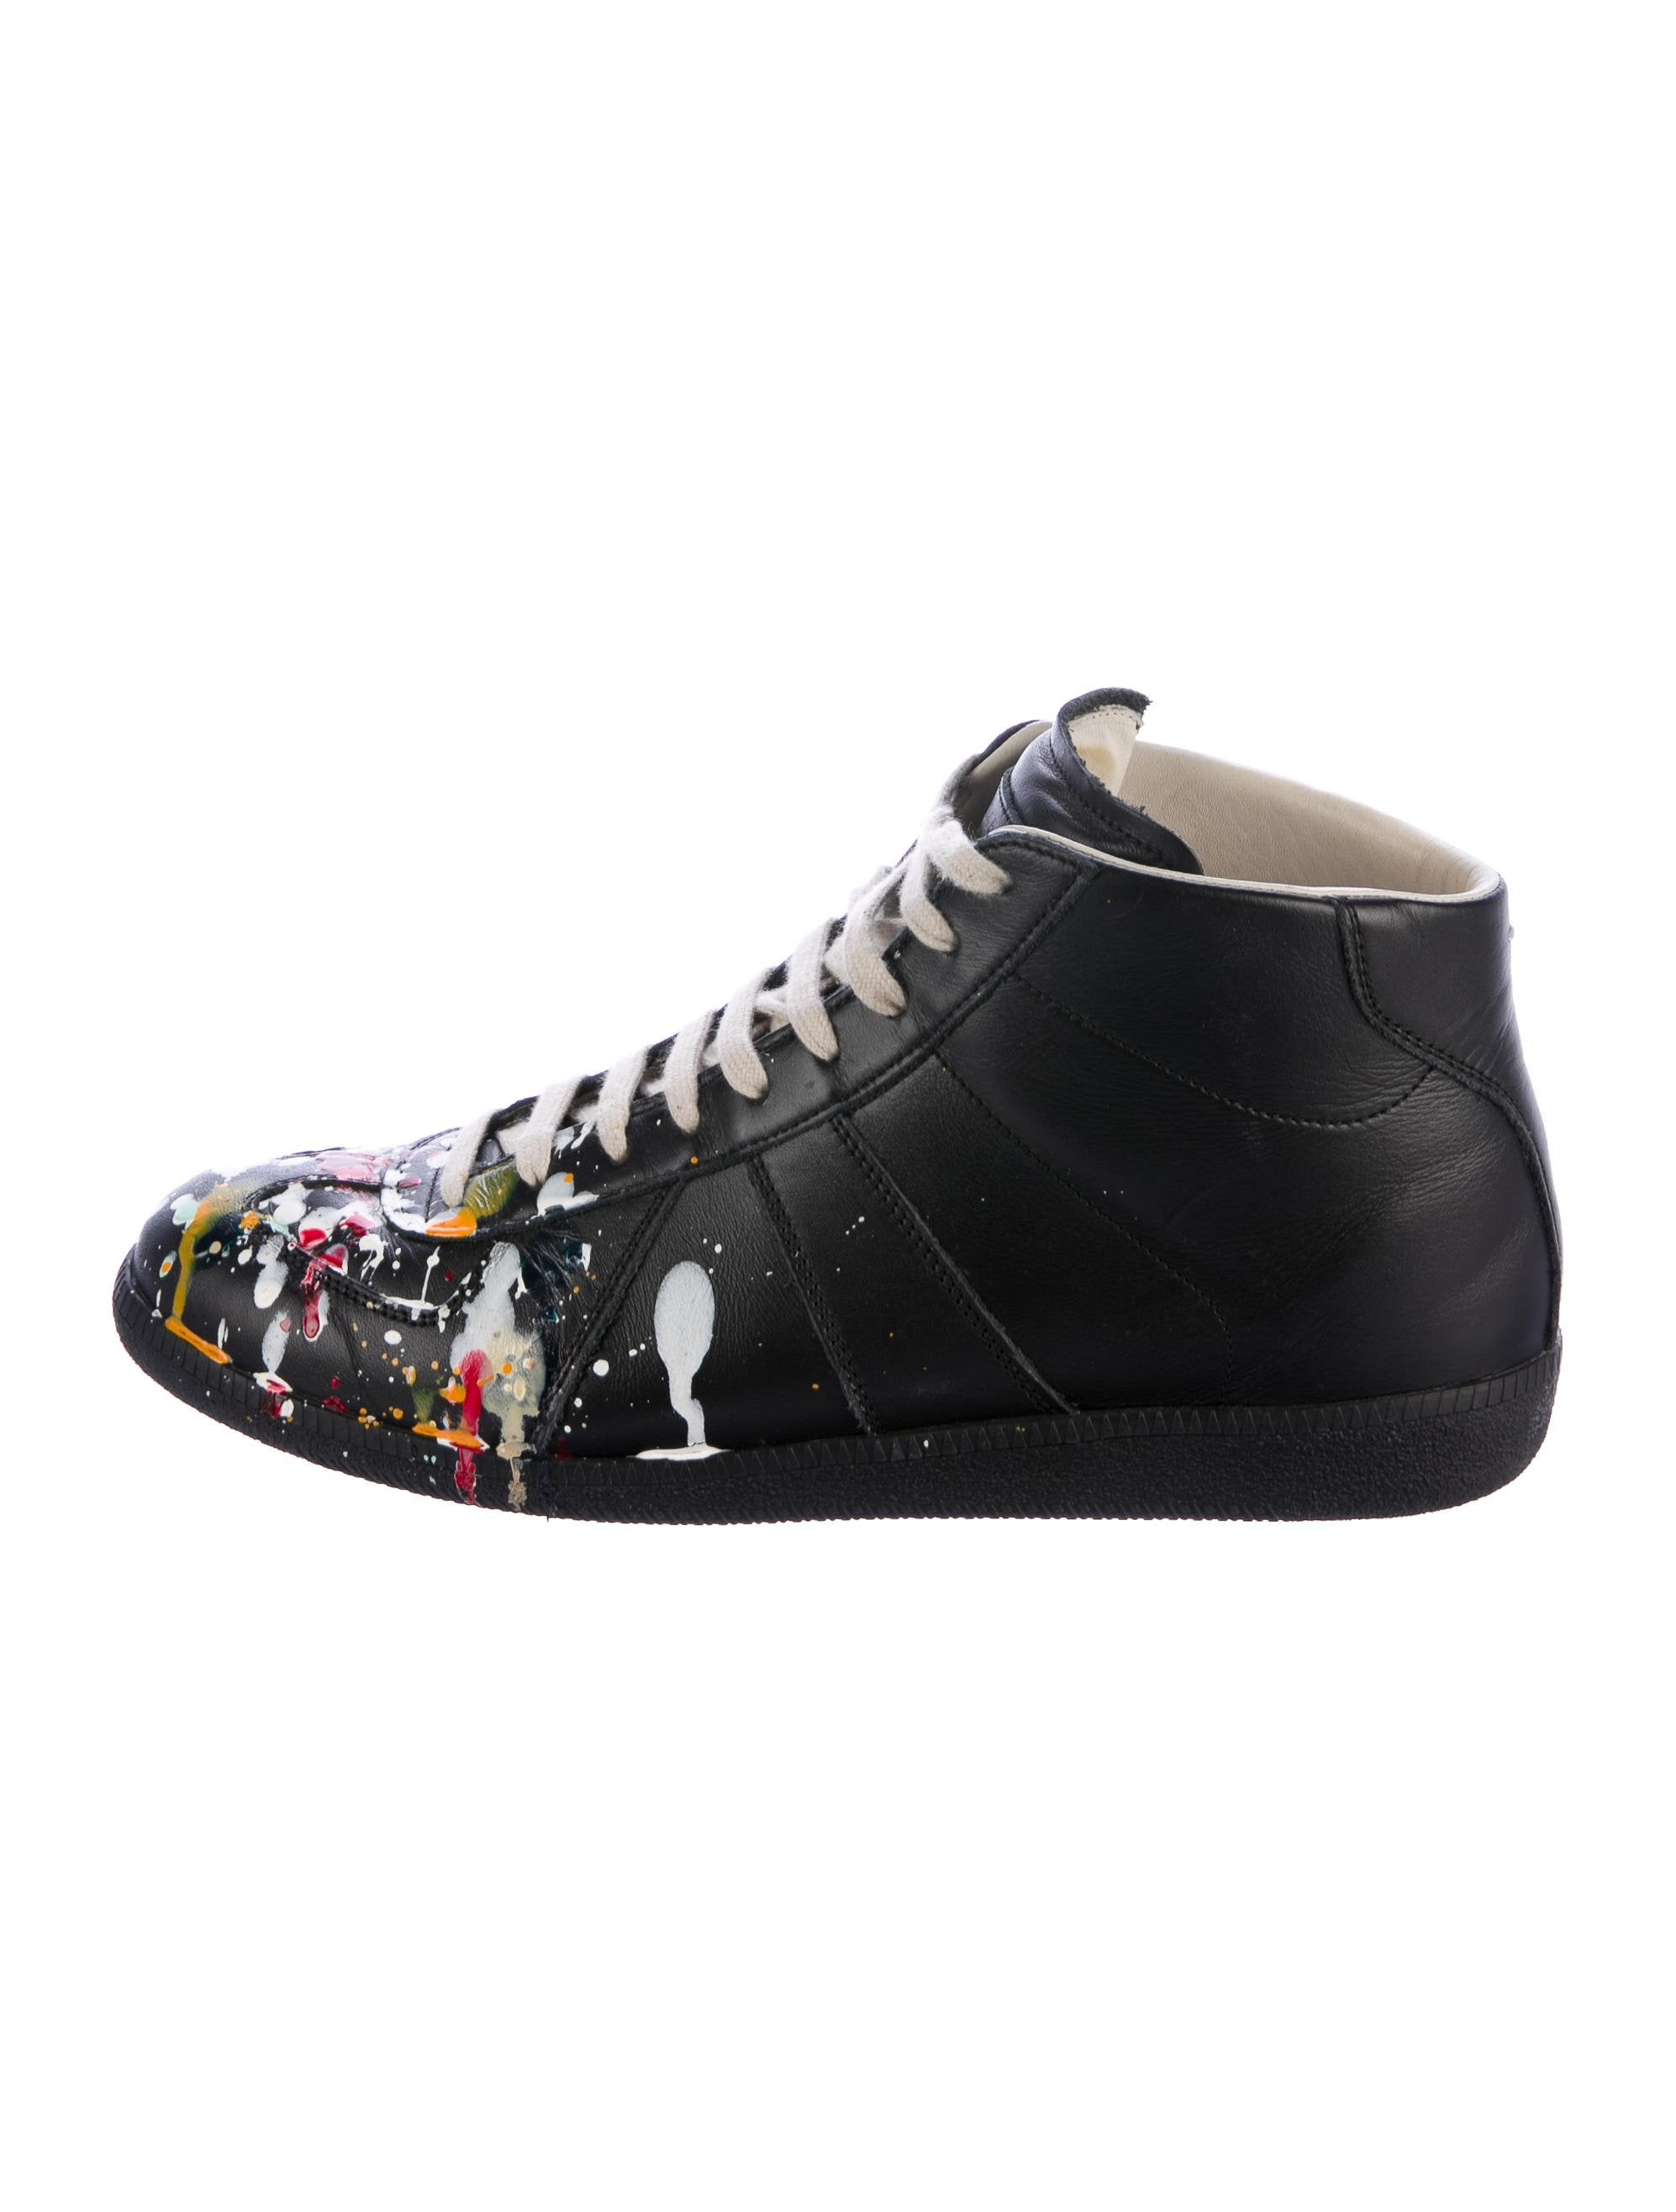 maison margiela paint splatter replica sneakers shoes mai32557 the realreal. Black Bedroom Furniture Sets. Home Design Ideas